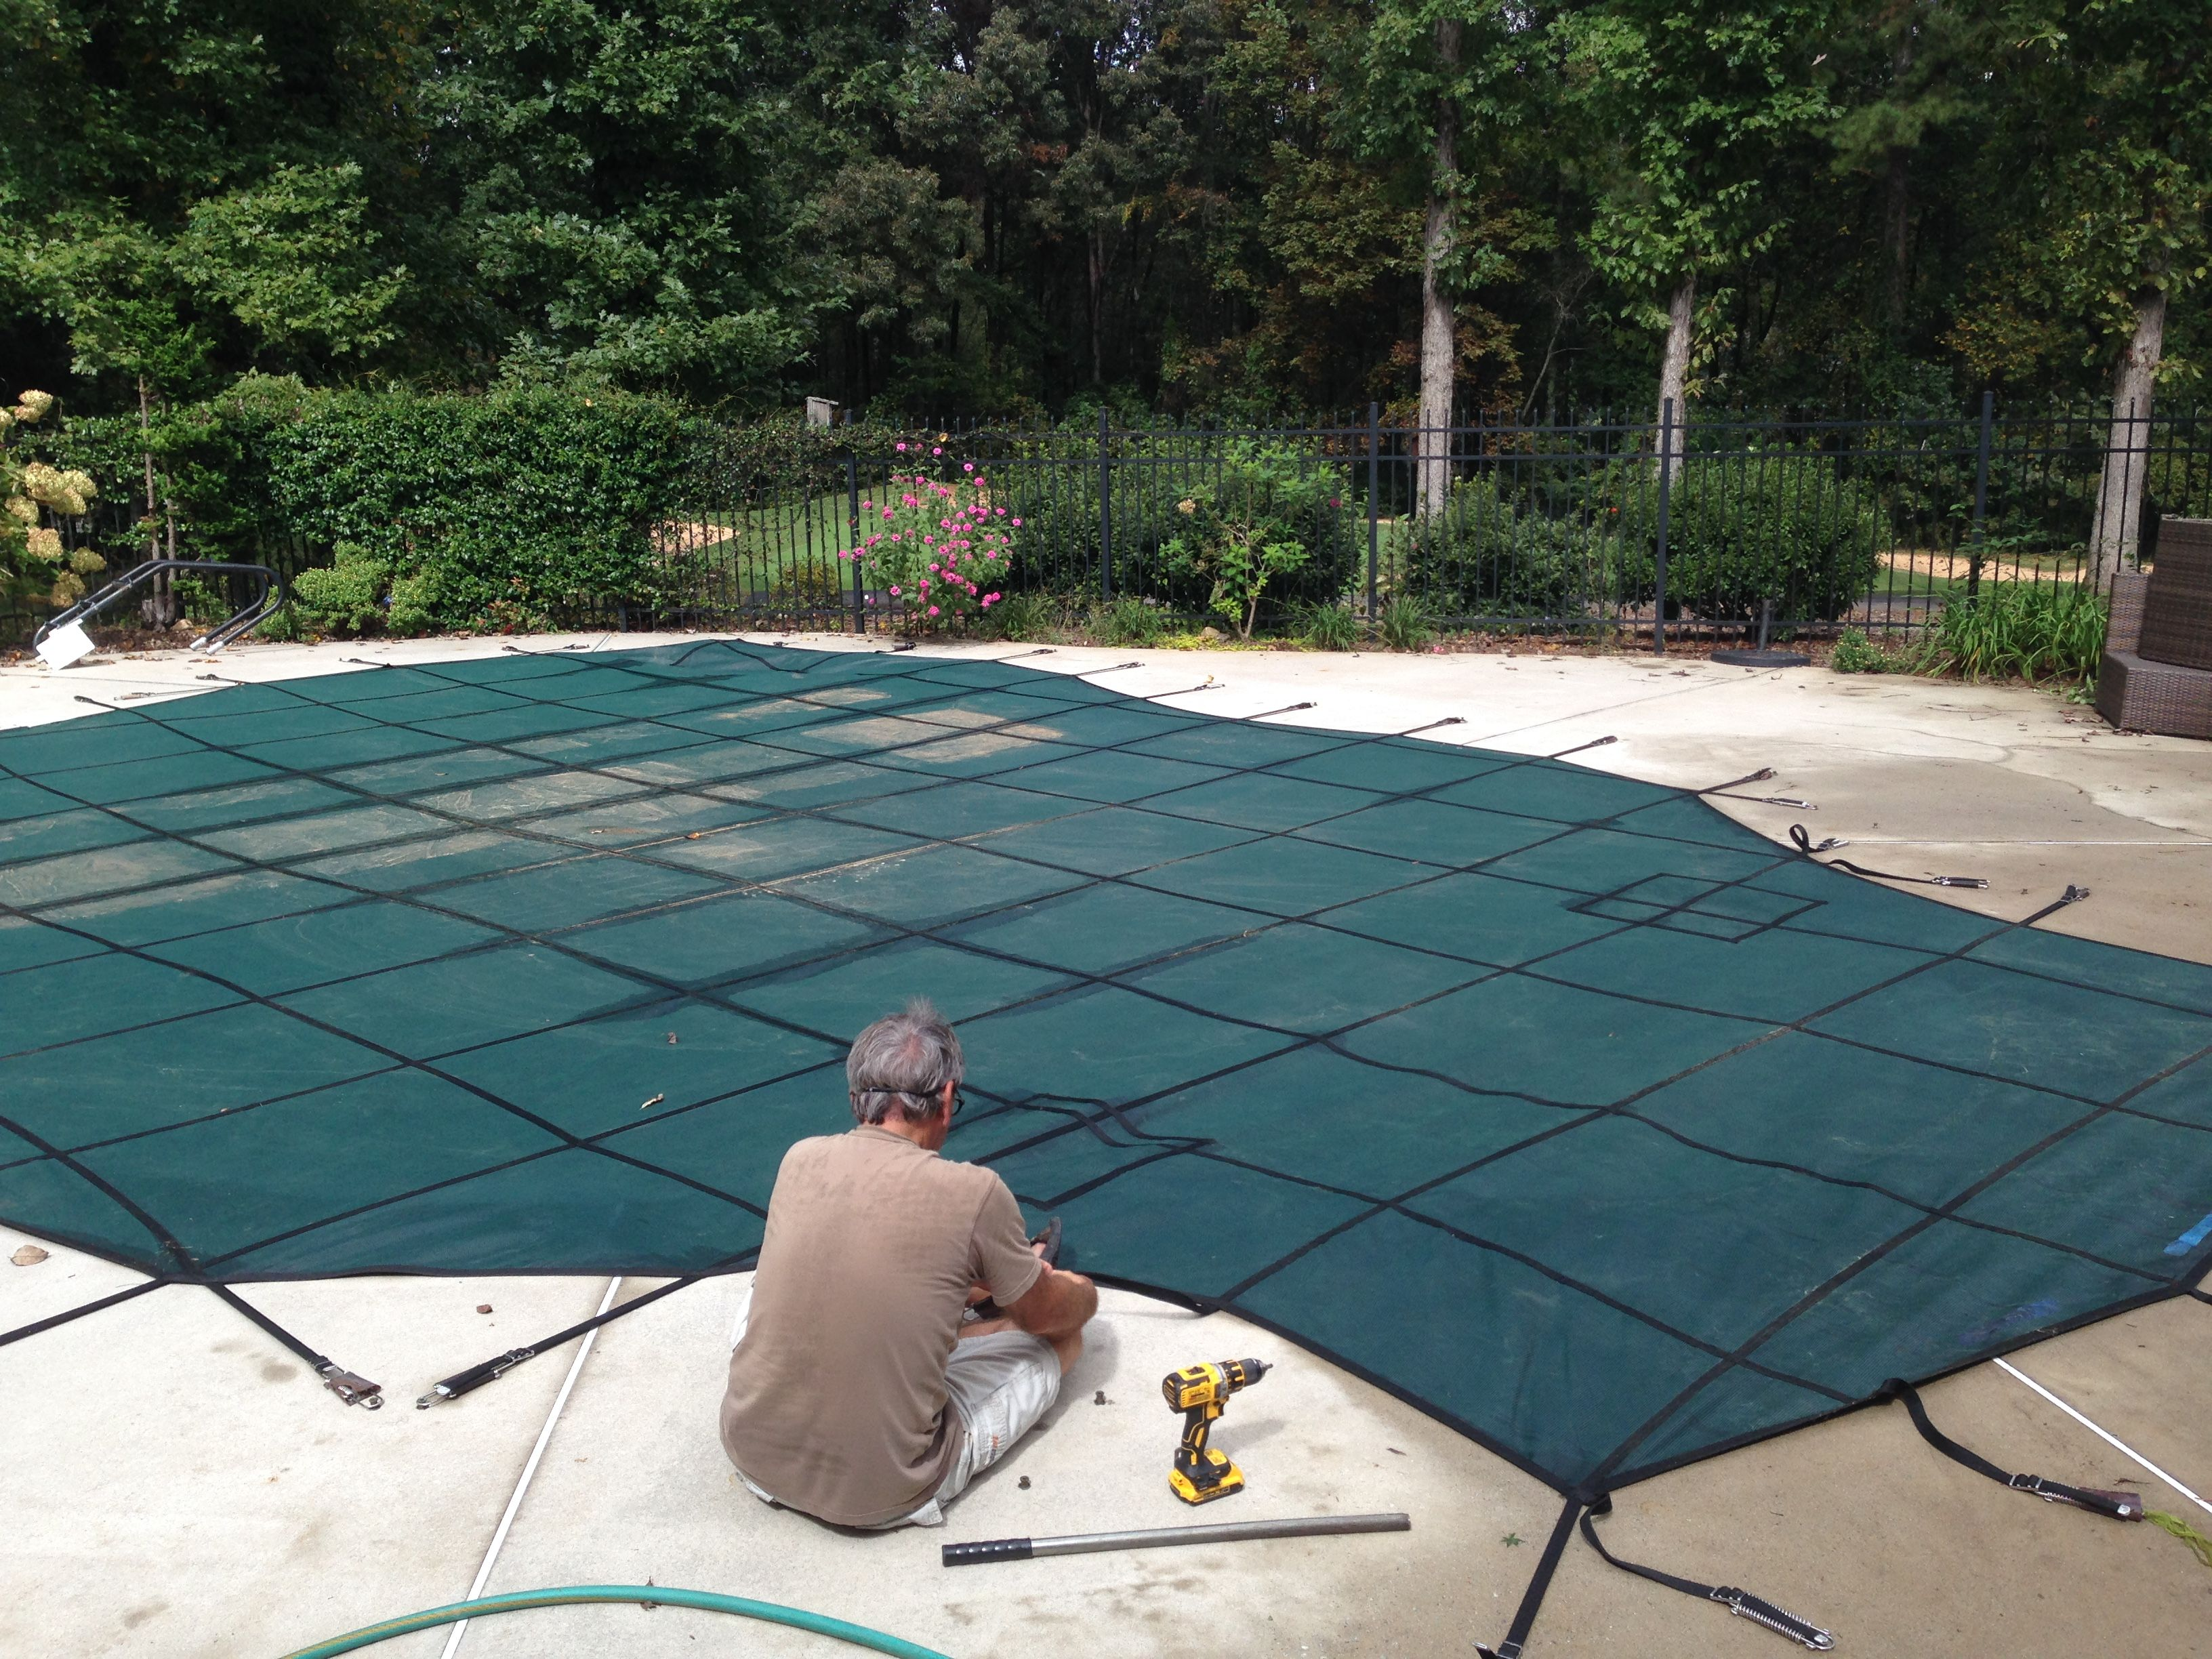 An Inground Swimming Pool Cover: Take a Break from Pool ...